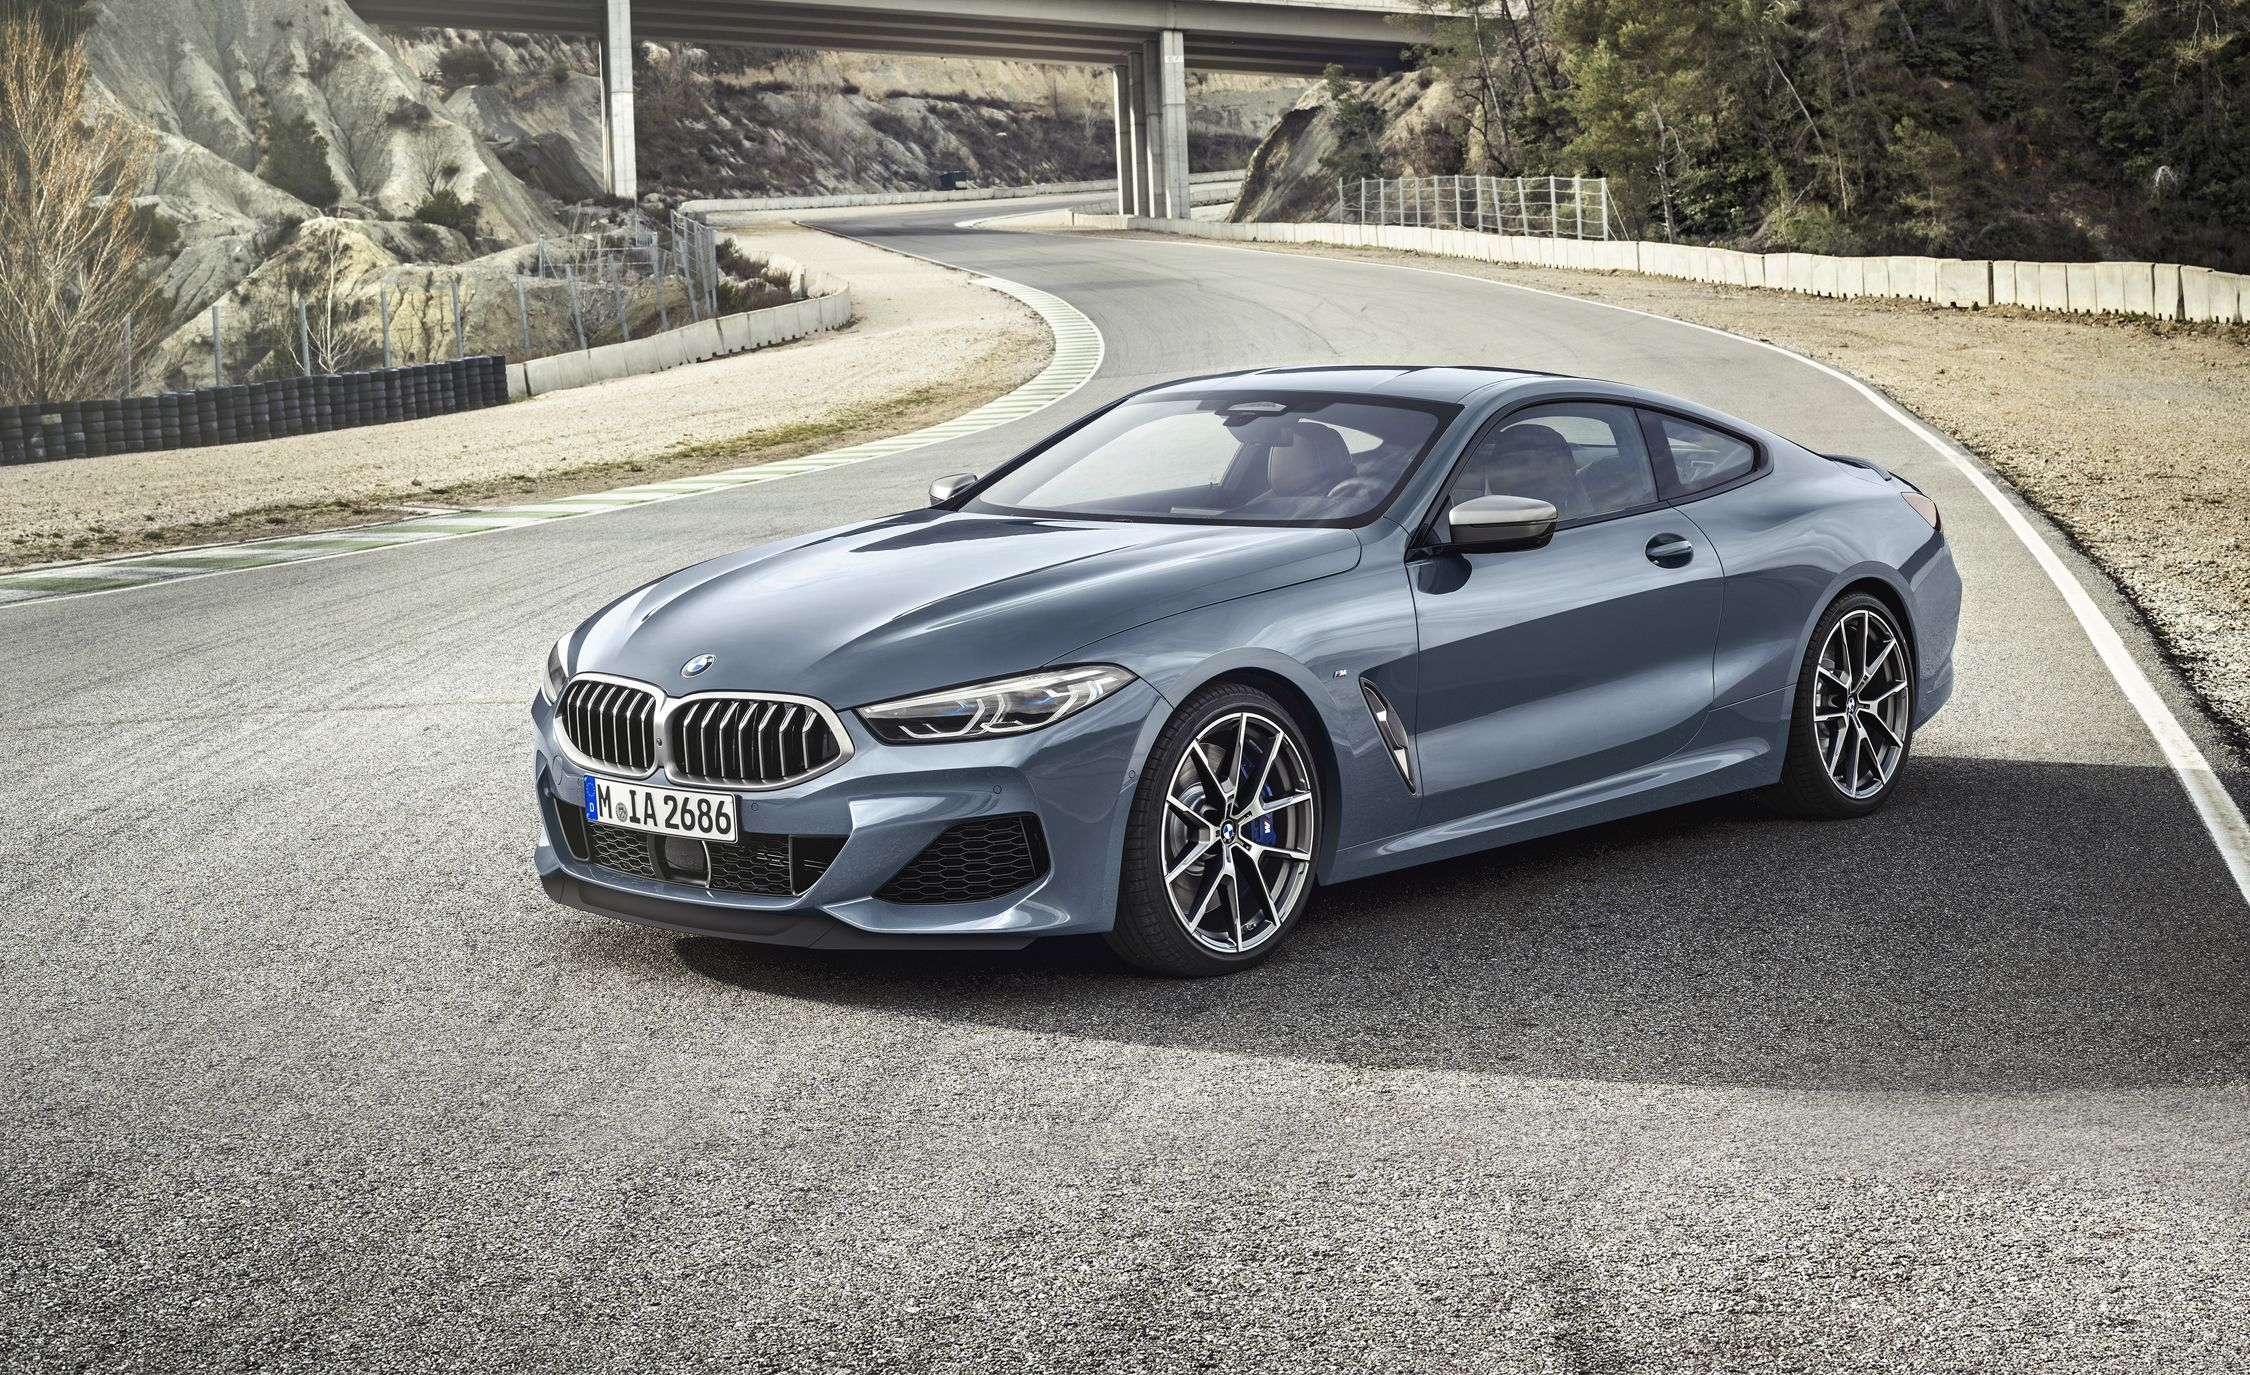 BMW 850i Archived Test | Review | Car and Driver